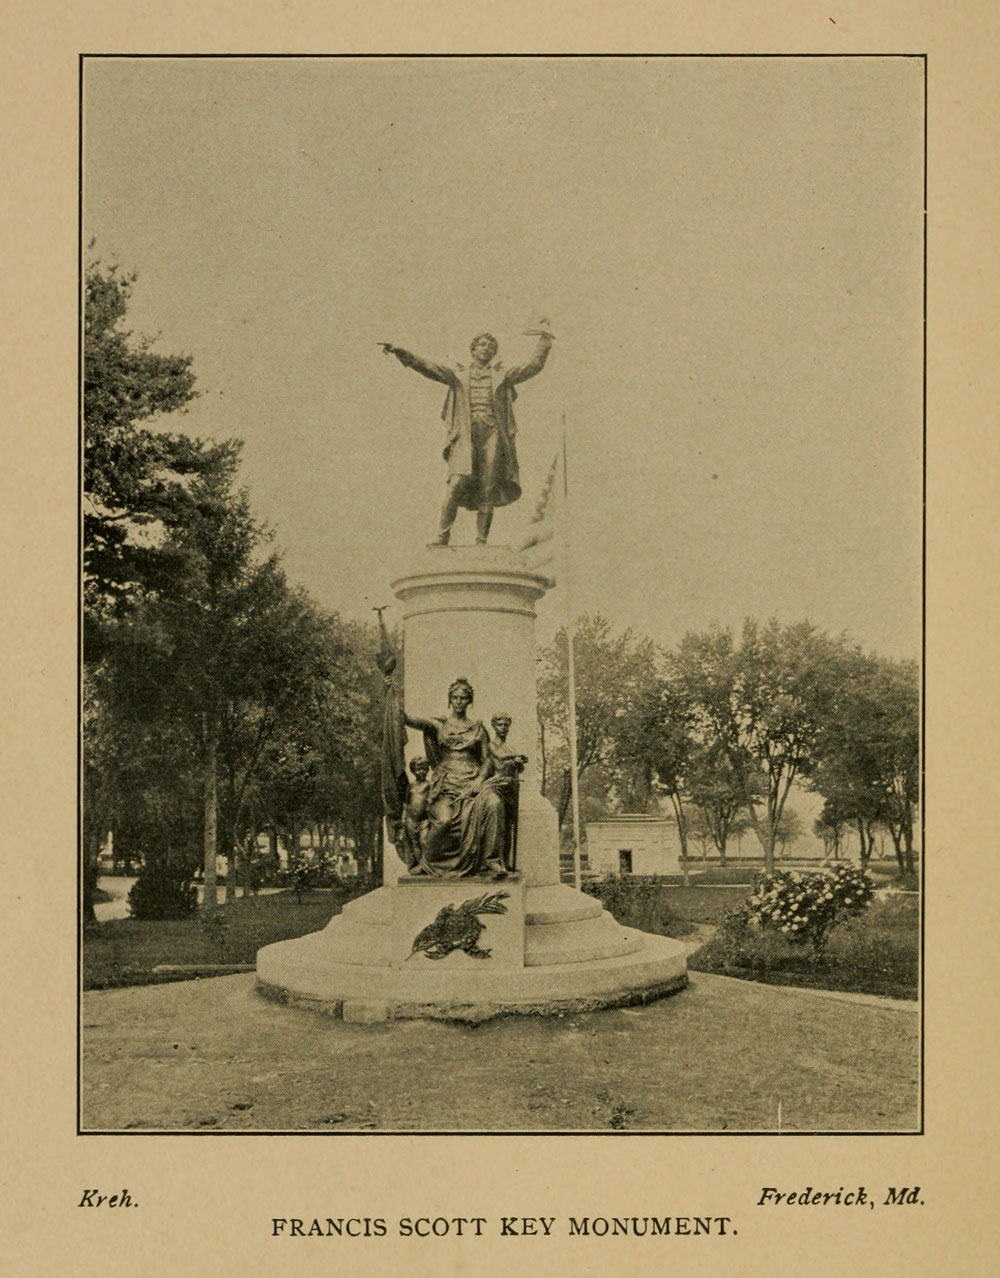 Francis Scott Key Monument, Frederic, Maryland.